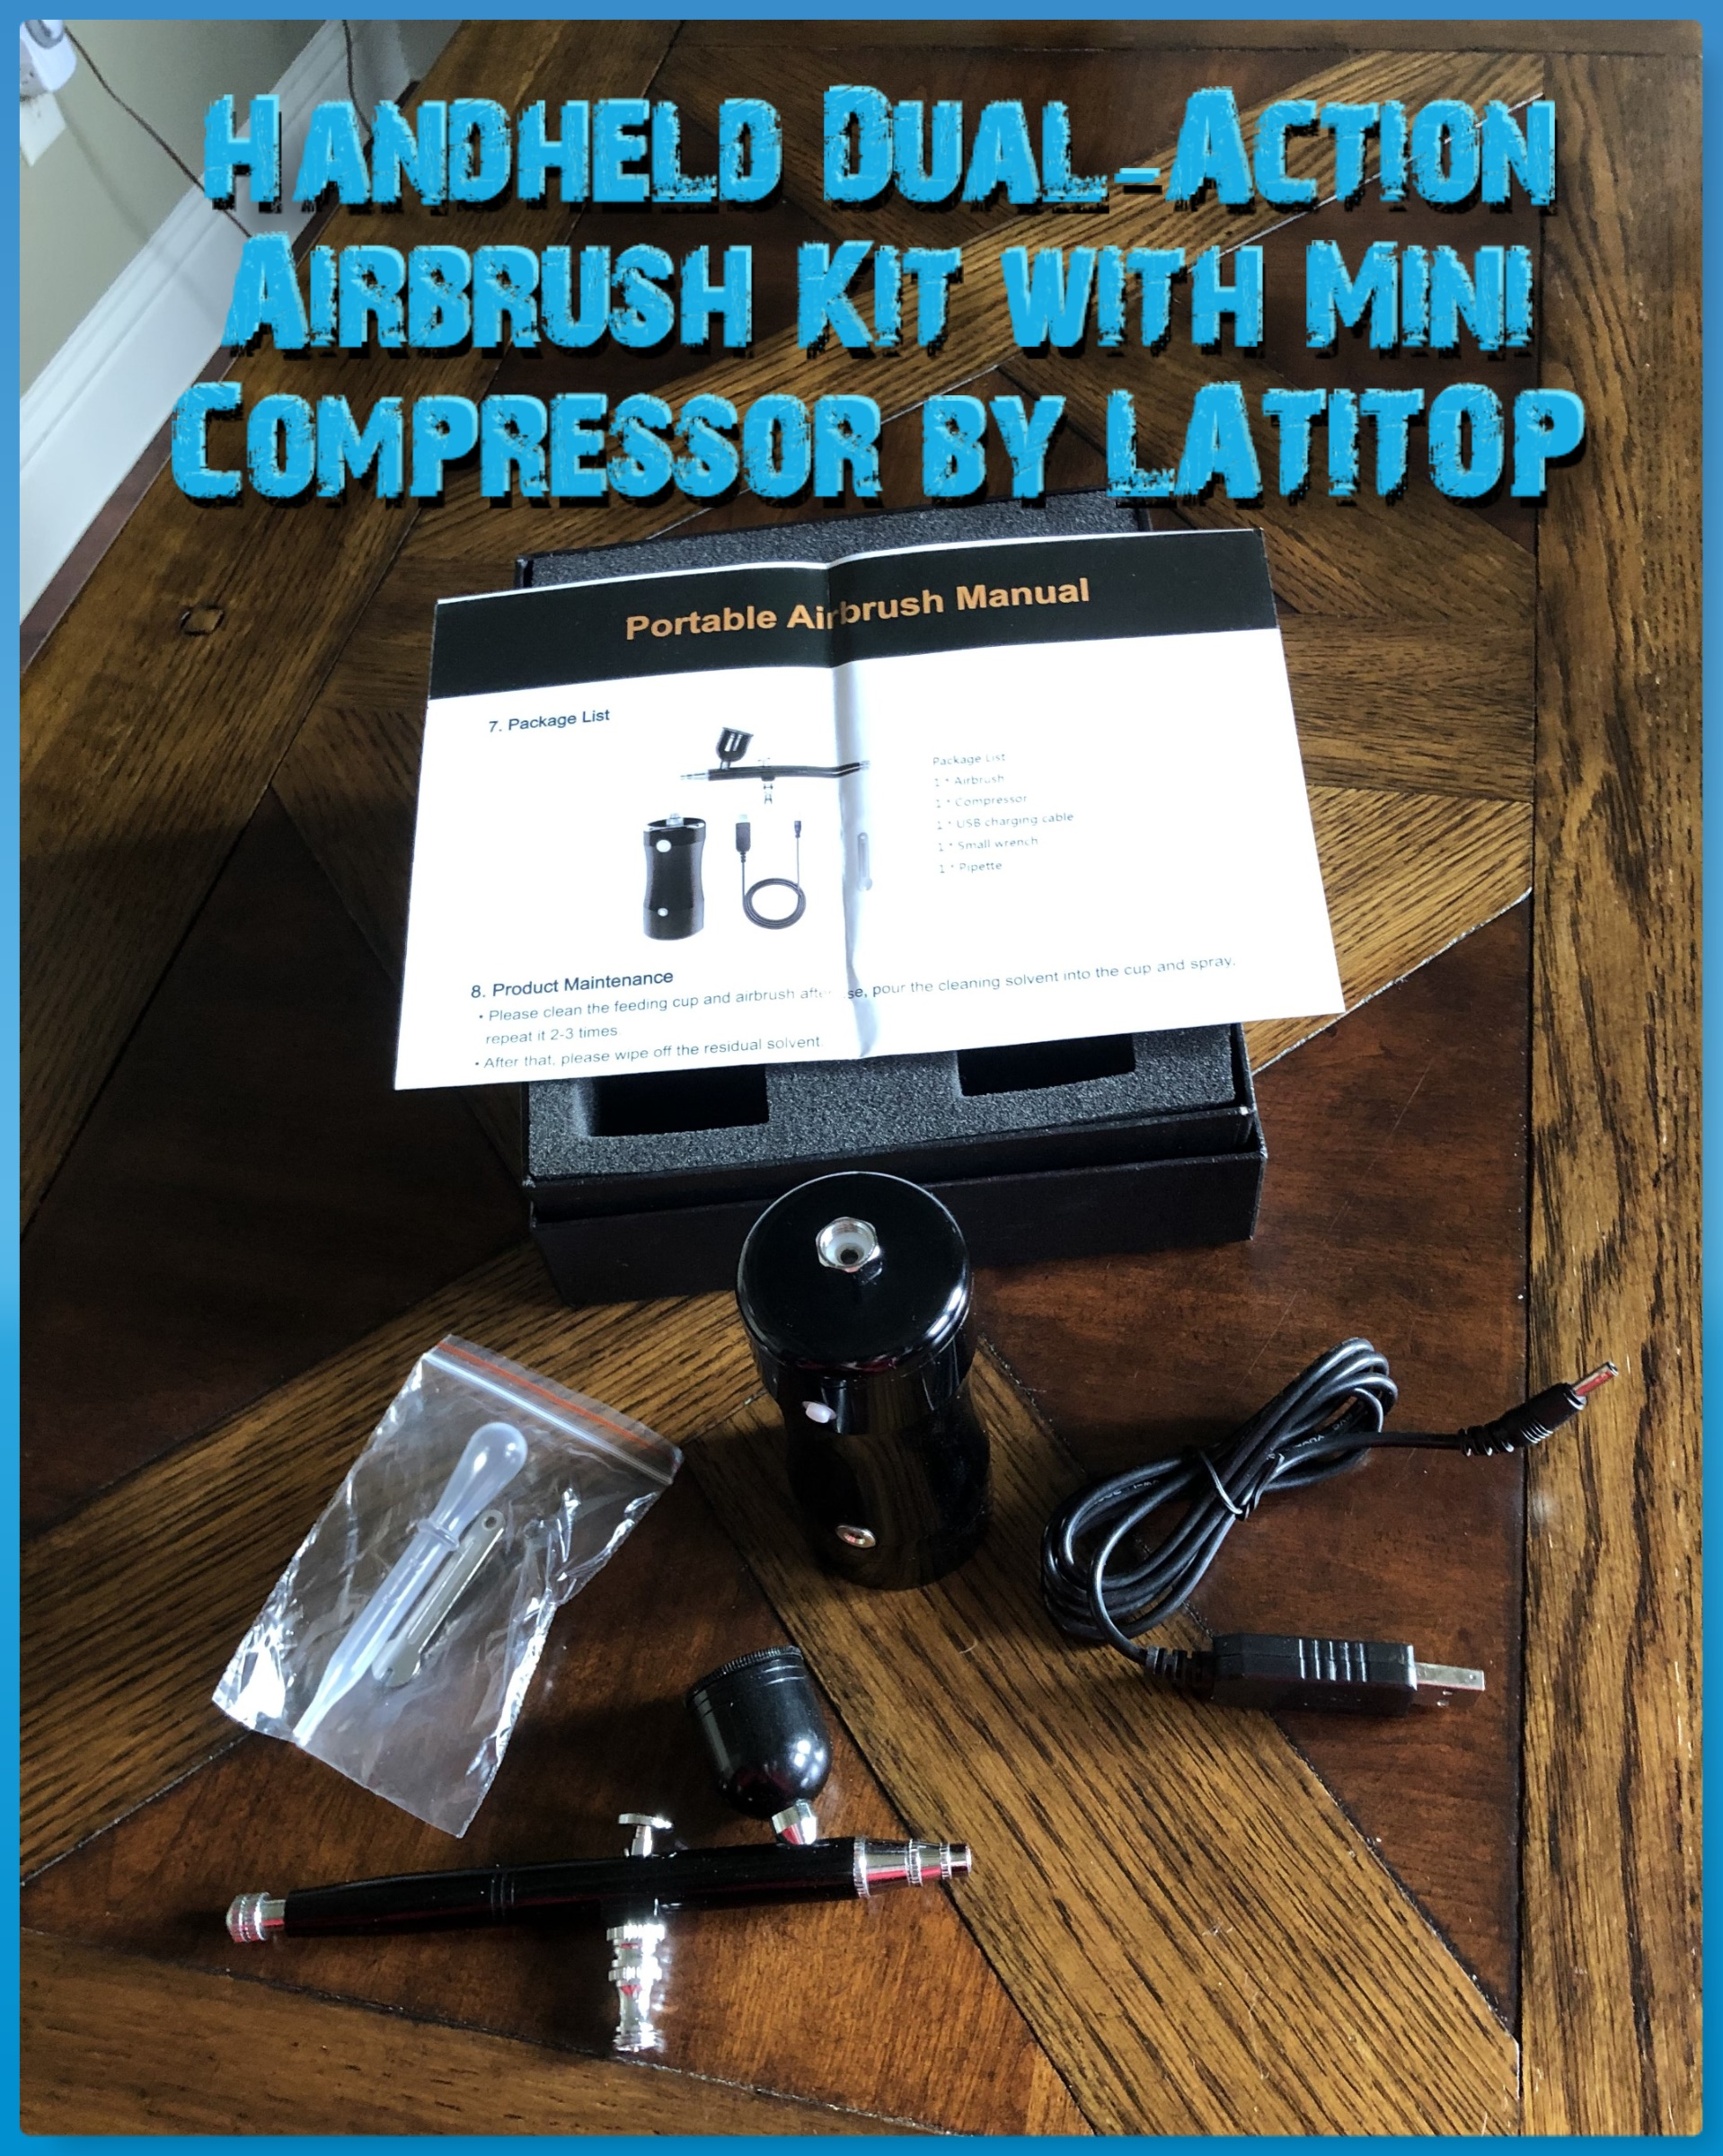 Handheld Dual-Action Airbrush Kit with Mini Air Compressor (Black) by LATITOP